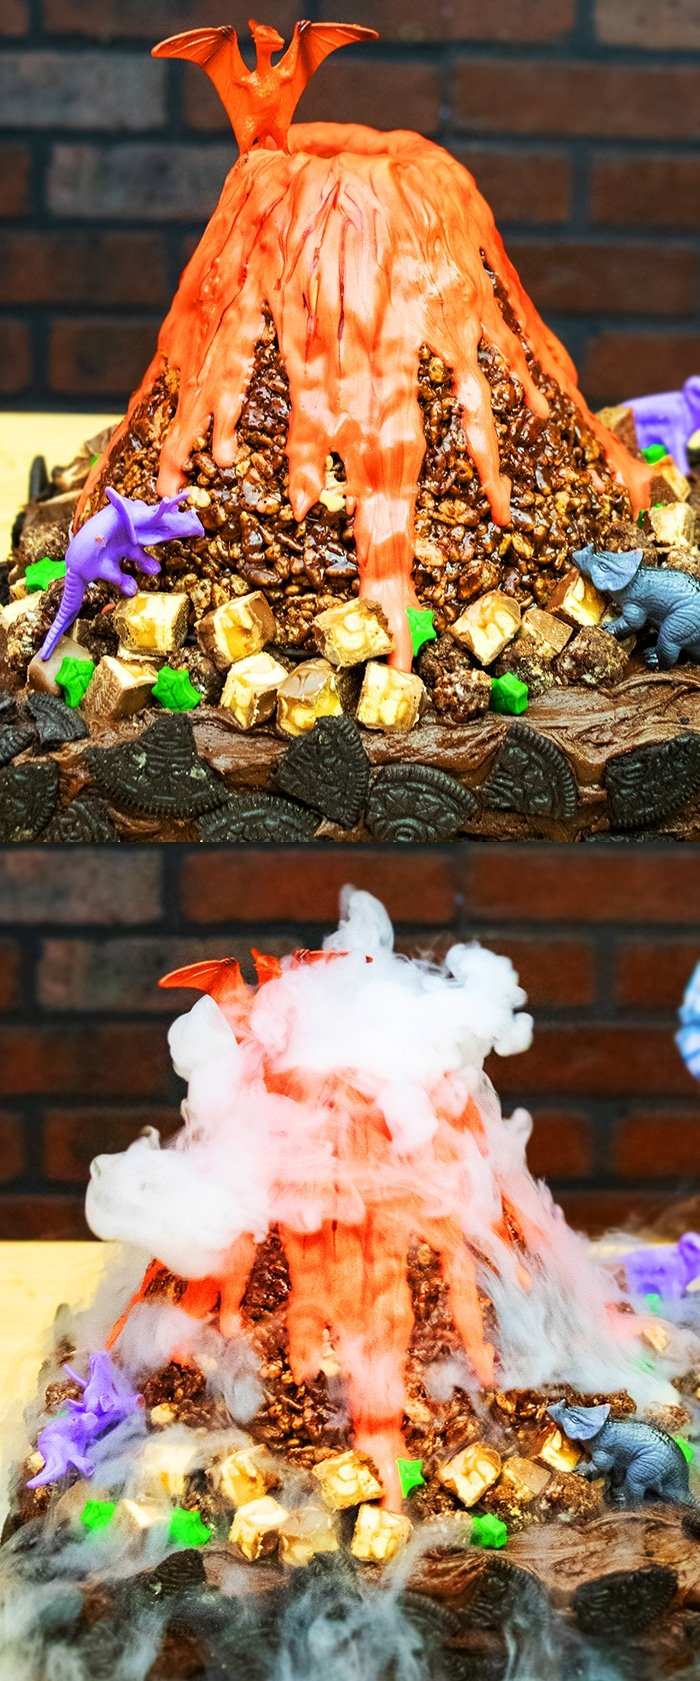 Collage Image With 2 Pictures Showing Volcano Cake Erupting with Smoke And Without Smoke